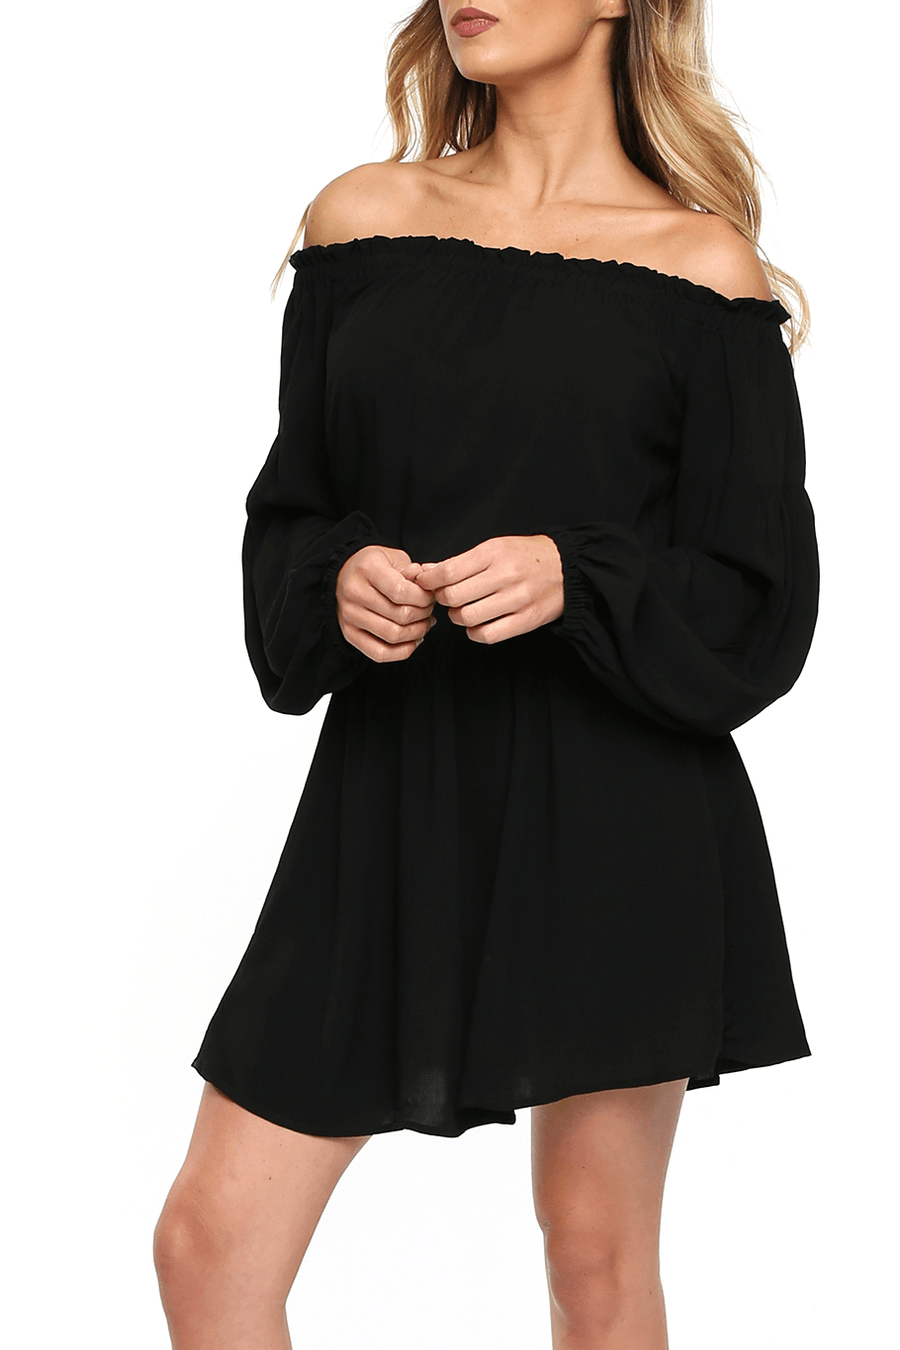 Argentina Mini Dress - Black - Shore